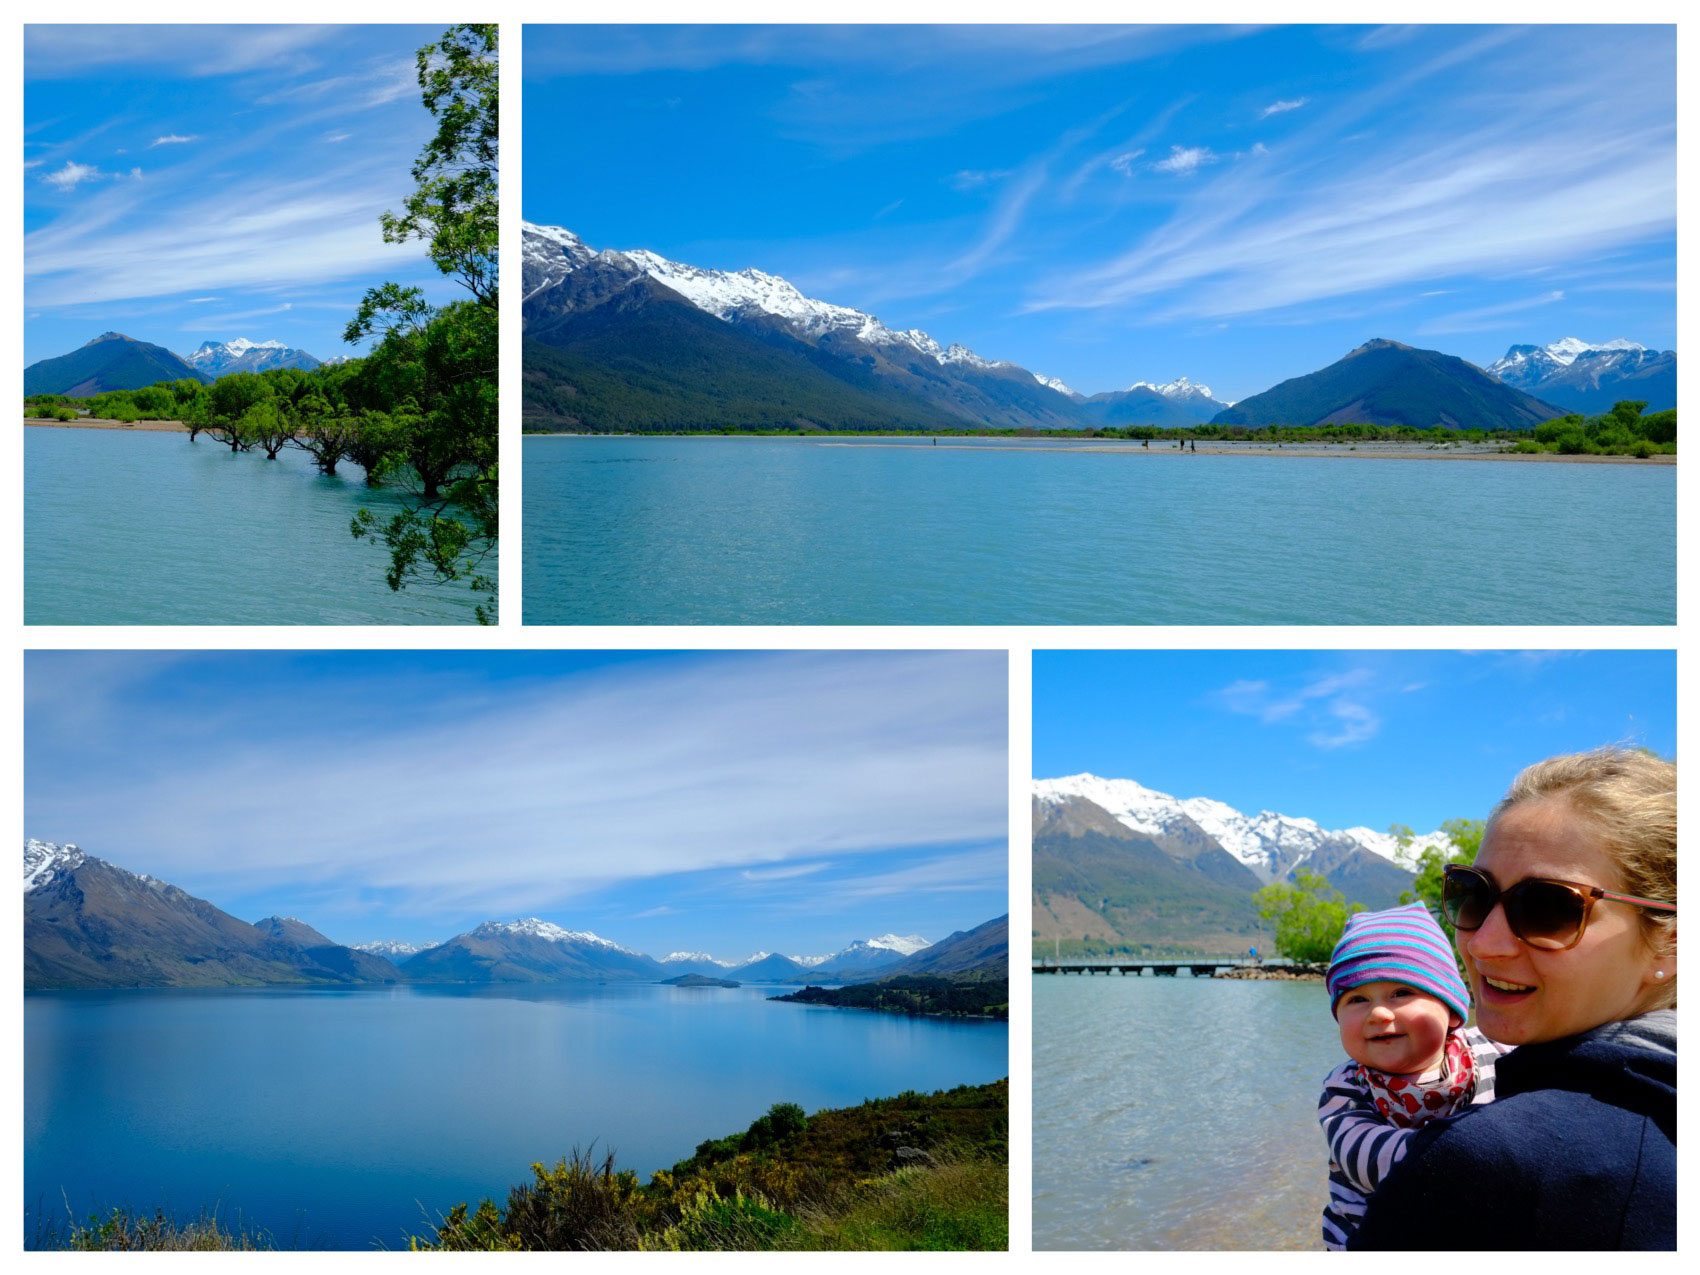 Glenorchy / Neuseeland am Lake Wakatipu